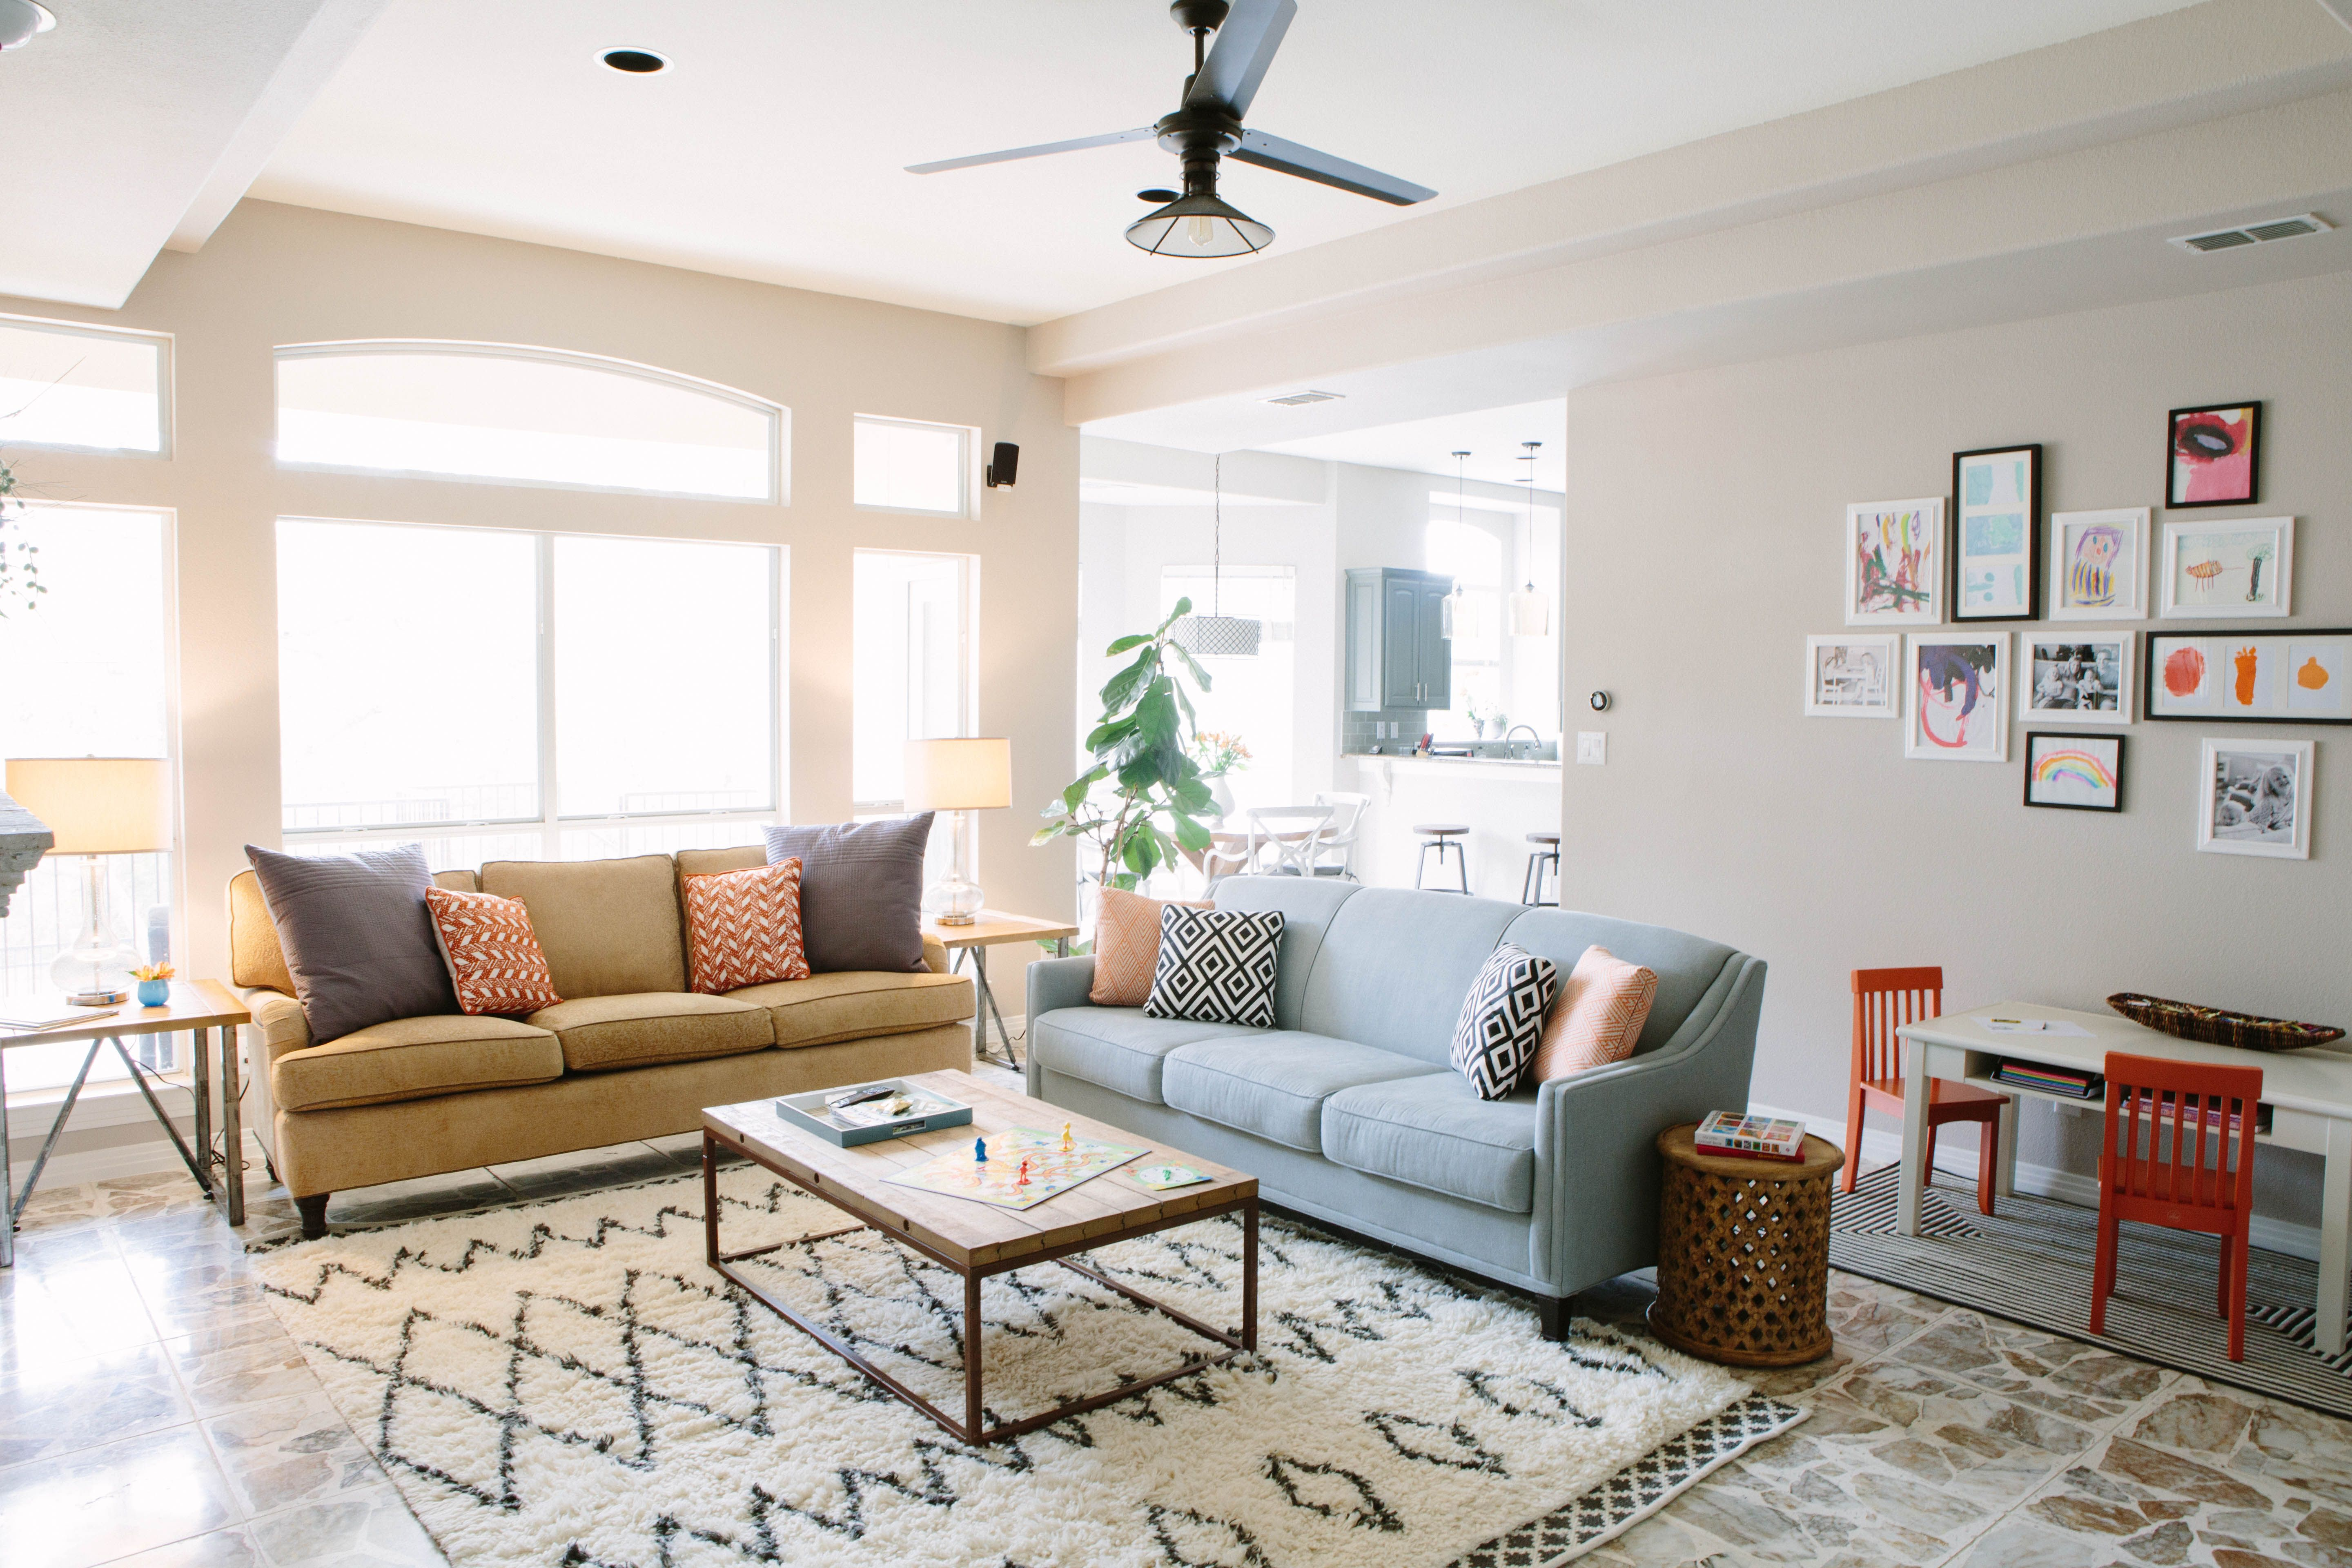 Kid friendly family room ideas - Best 25 Kid Friendly Rugs Ideas On Pinterest Kid Friendly Pillows Kid Friendly Modern Kitchens And Living Room Playroom